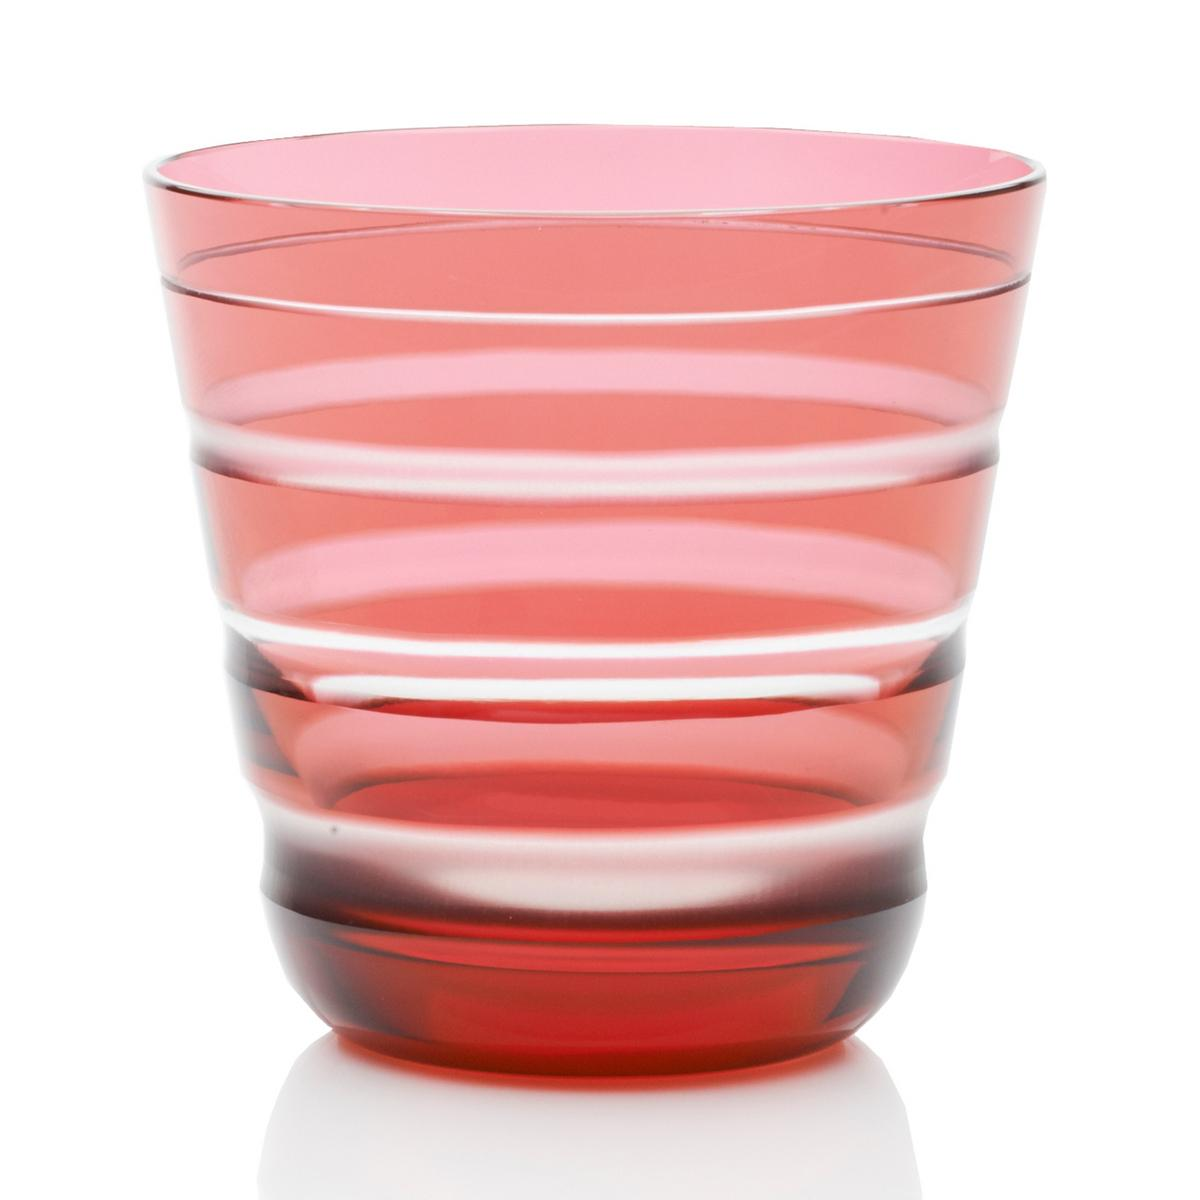 Rotter Glas rotter glas lineal no 103 tumbler size m pink artedona com